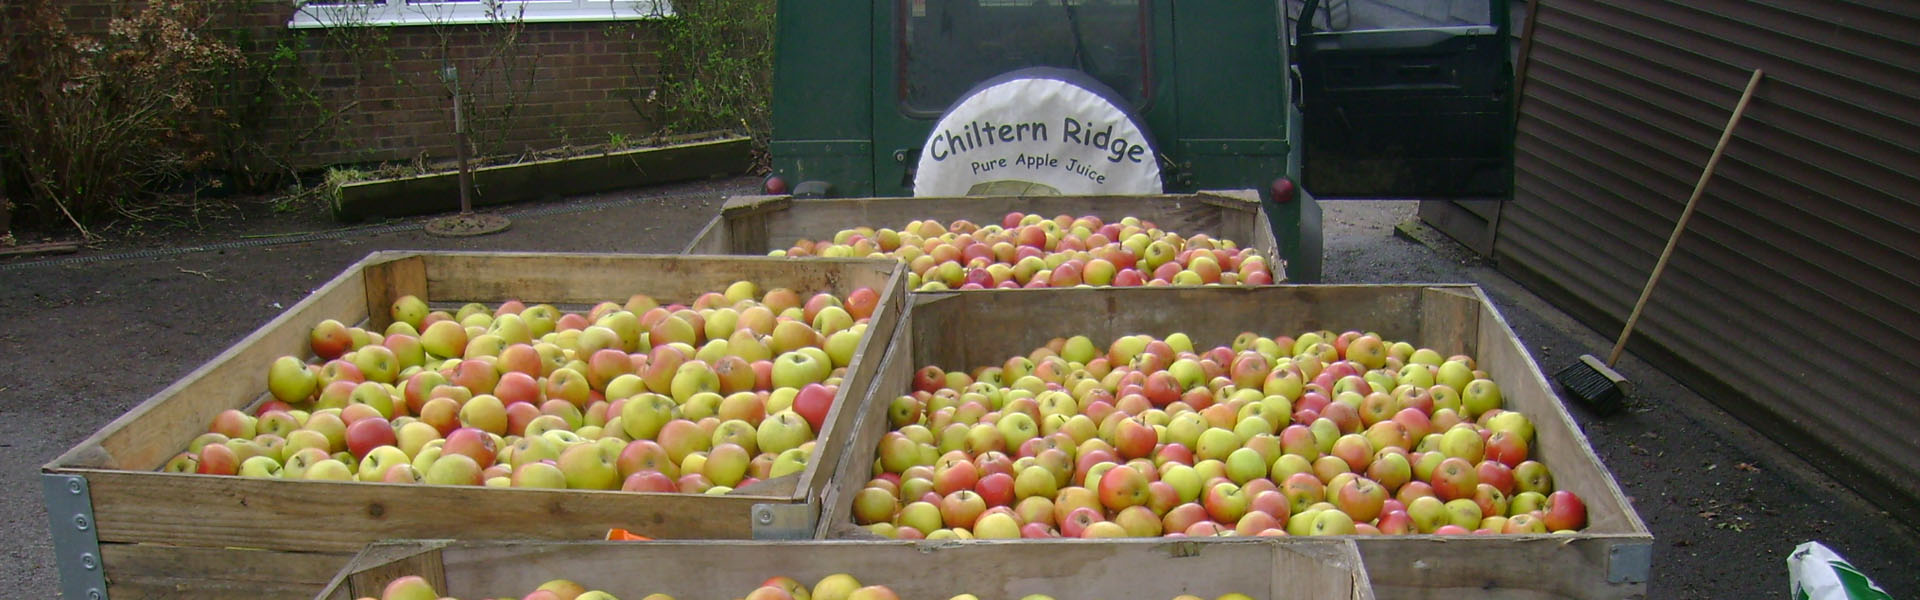 Chiltern Ridge Apple Juice